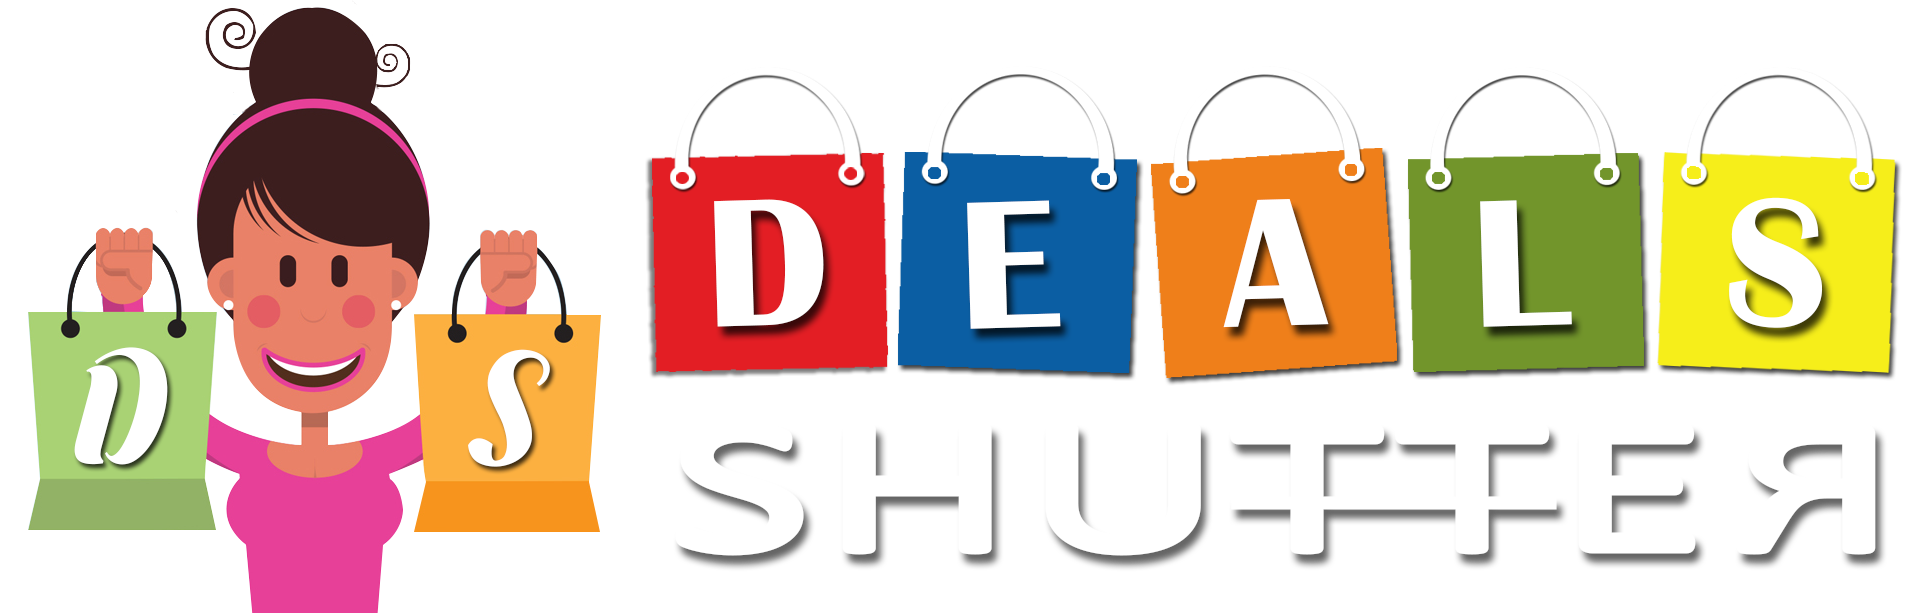 Grab the best deals of the day from Deals shutter online portal